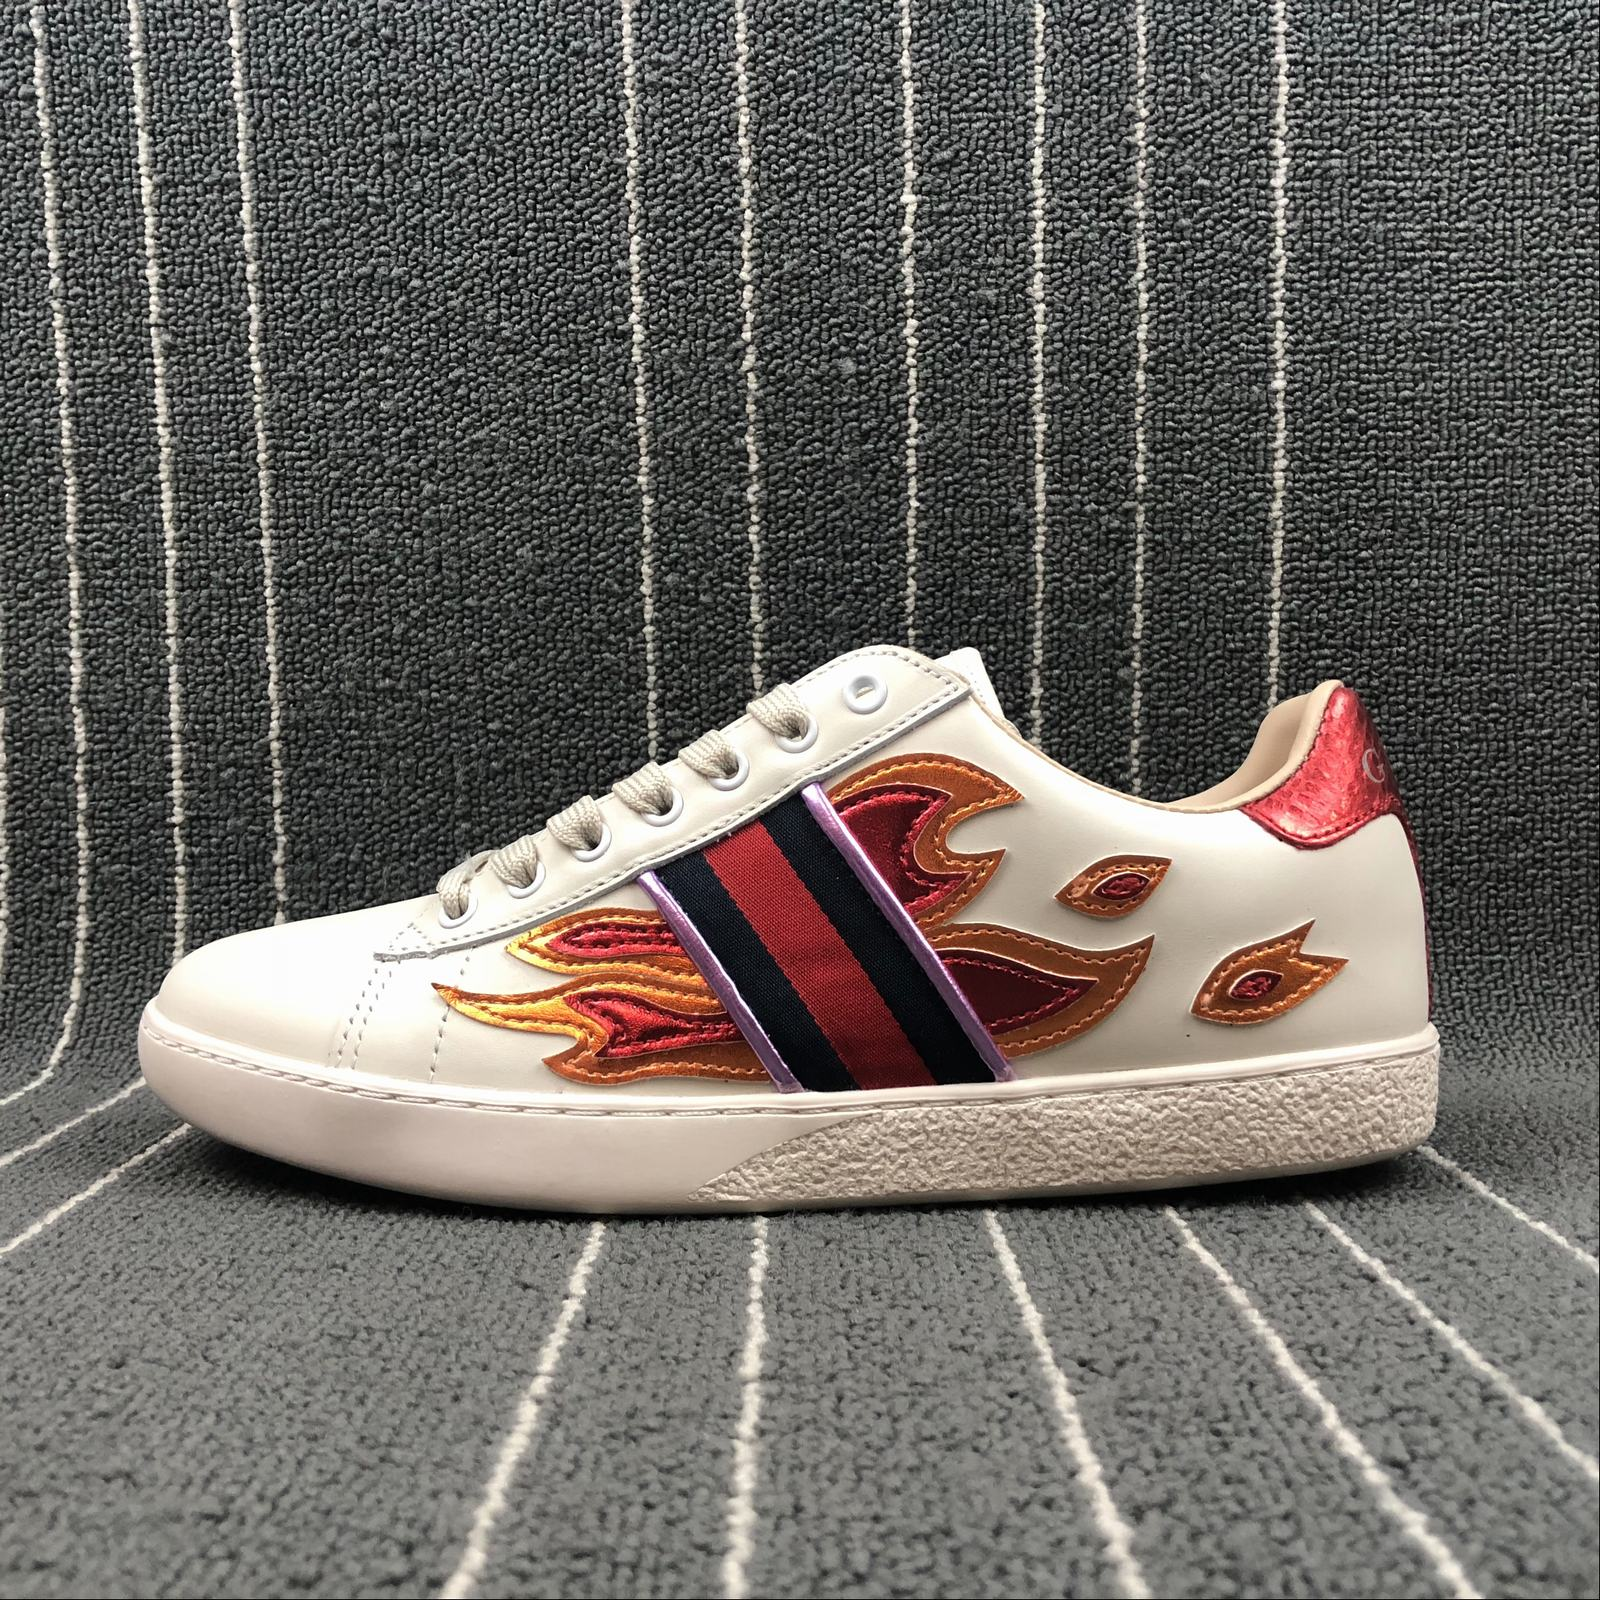 33c42dfab1f Мужские кроссовки Gucci Metallic Flame Men